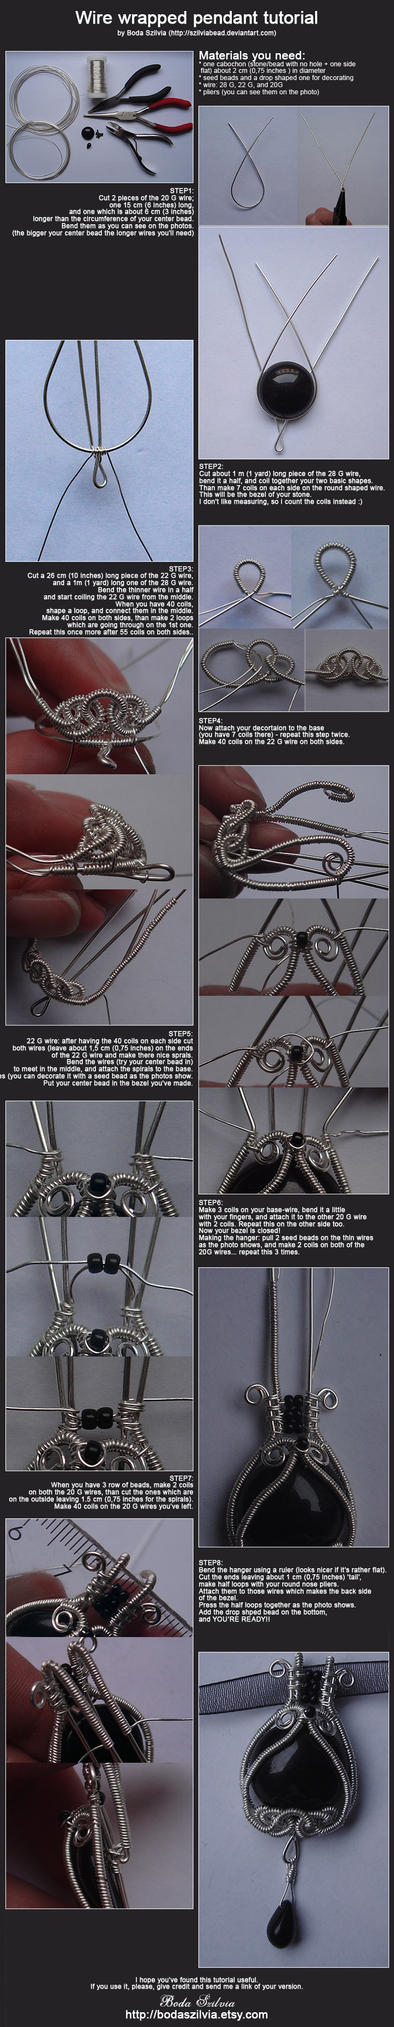 Wire-wrapping tutorial by bodaszilvia